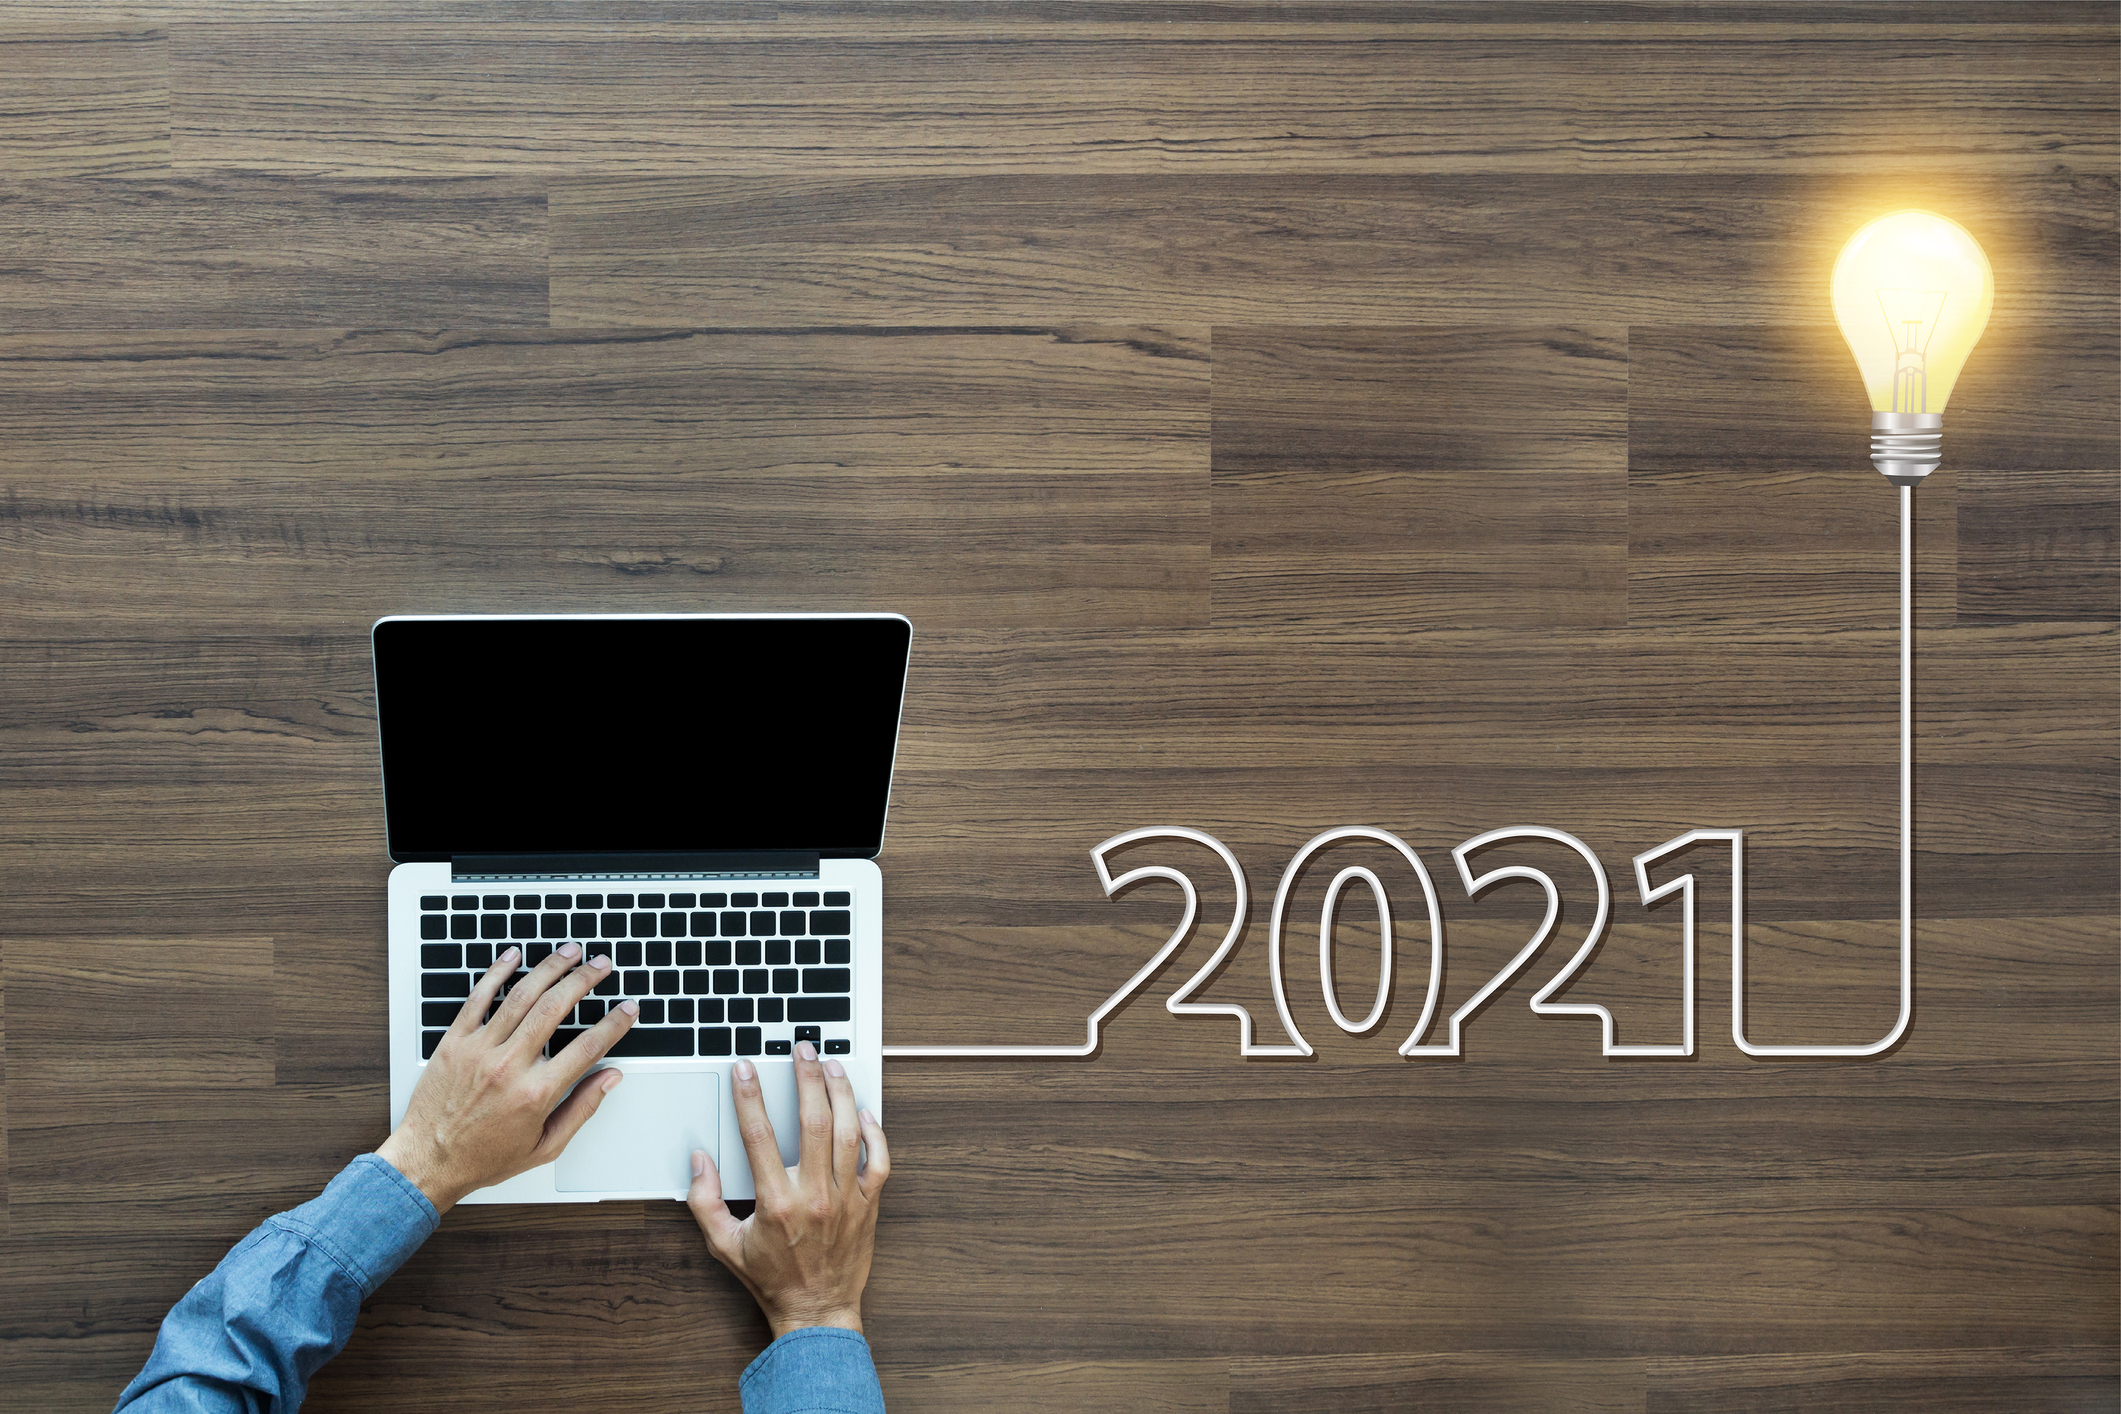 Media shifts that will prevail in 2021